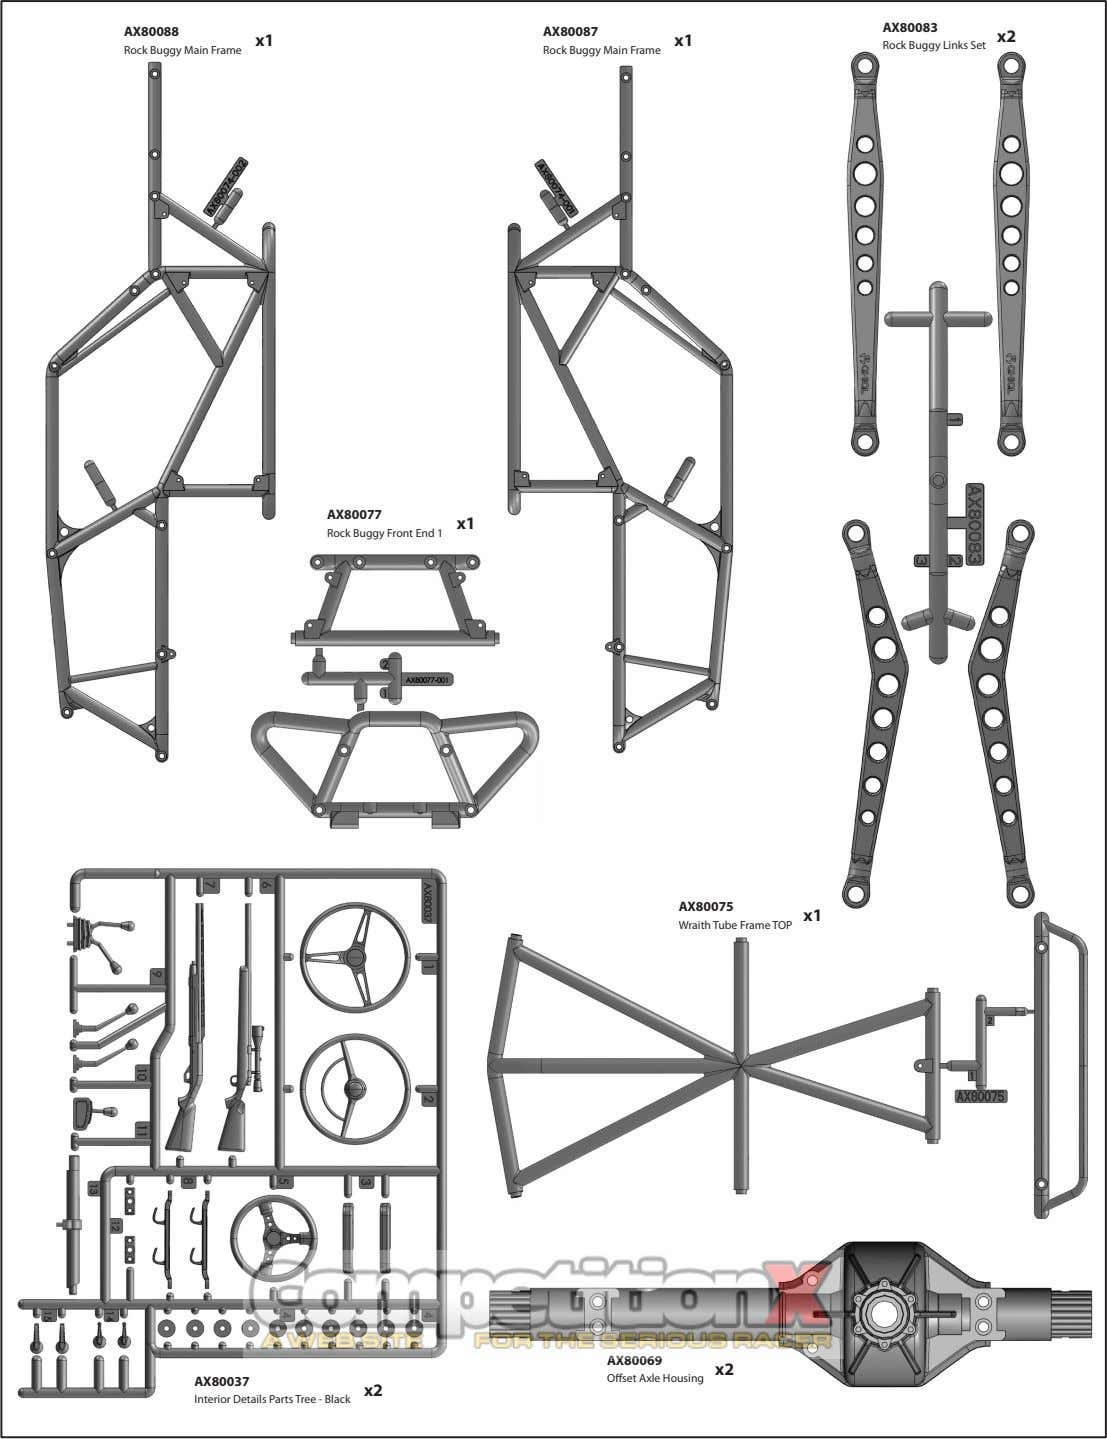 AX80083 AX80088 AX80087 x2 x1 x1 Rock Buggy Links Set Rock Buggy Main Frame Rock